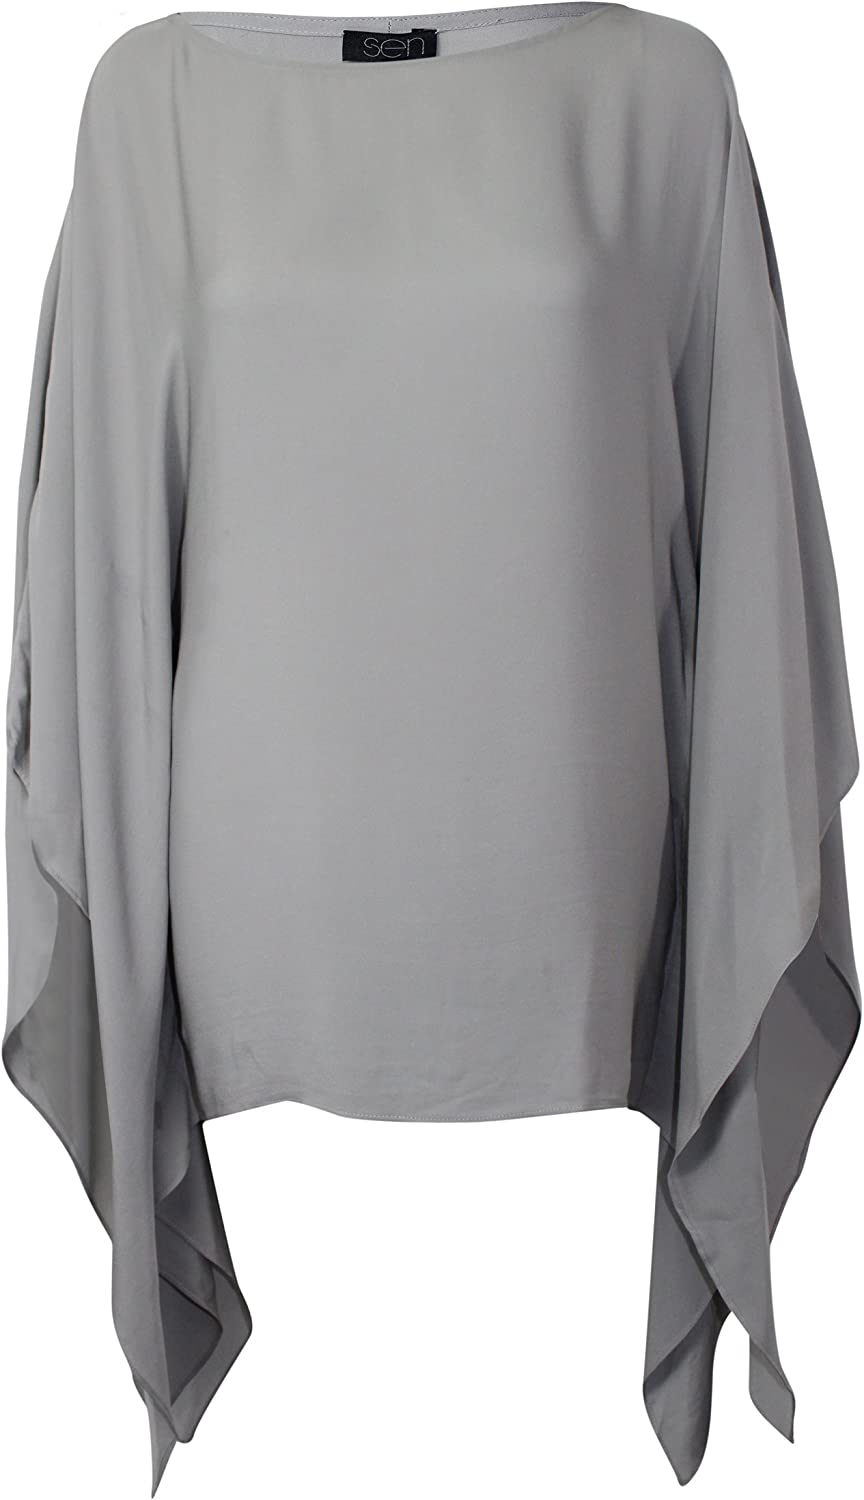 SEN Womens Silk Poncho Top Grey